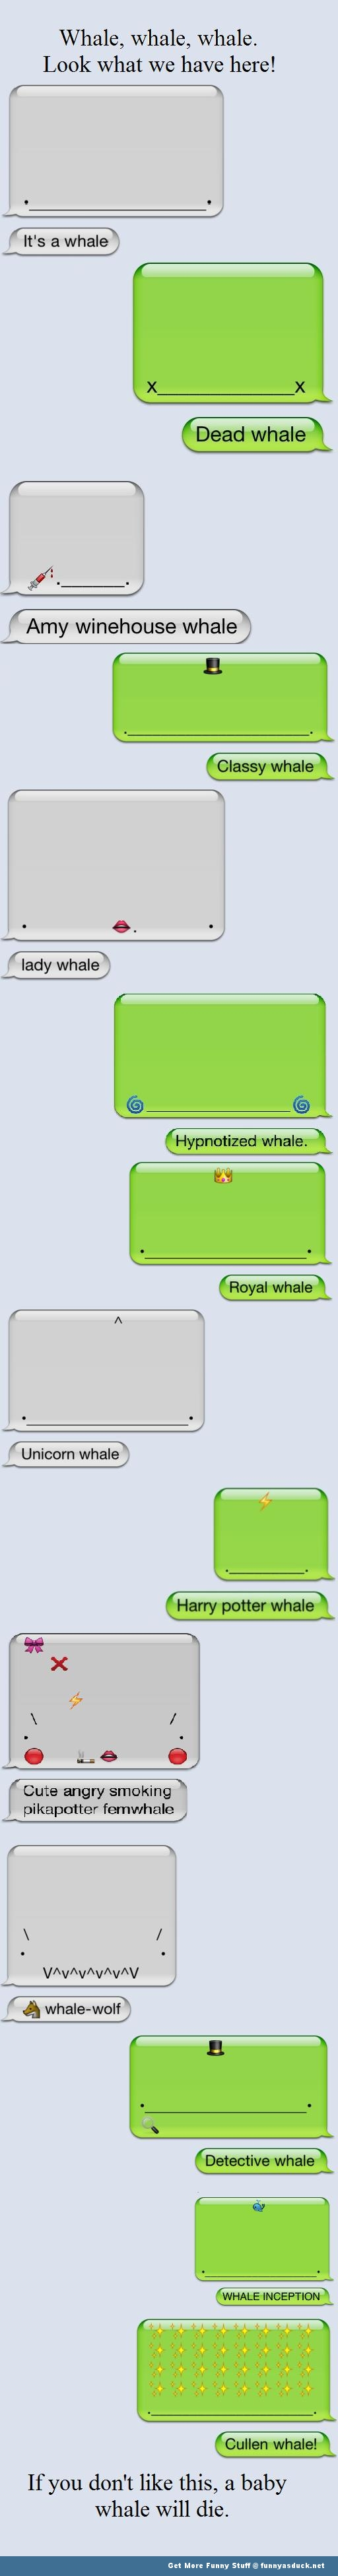 whales animal iPhone Apple funny pic picture lol